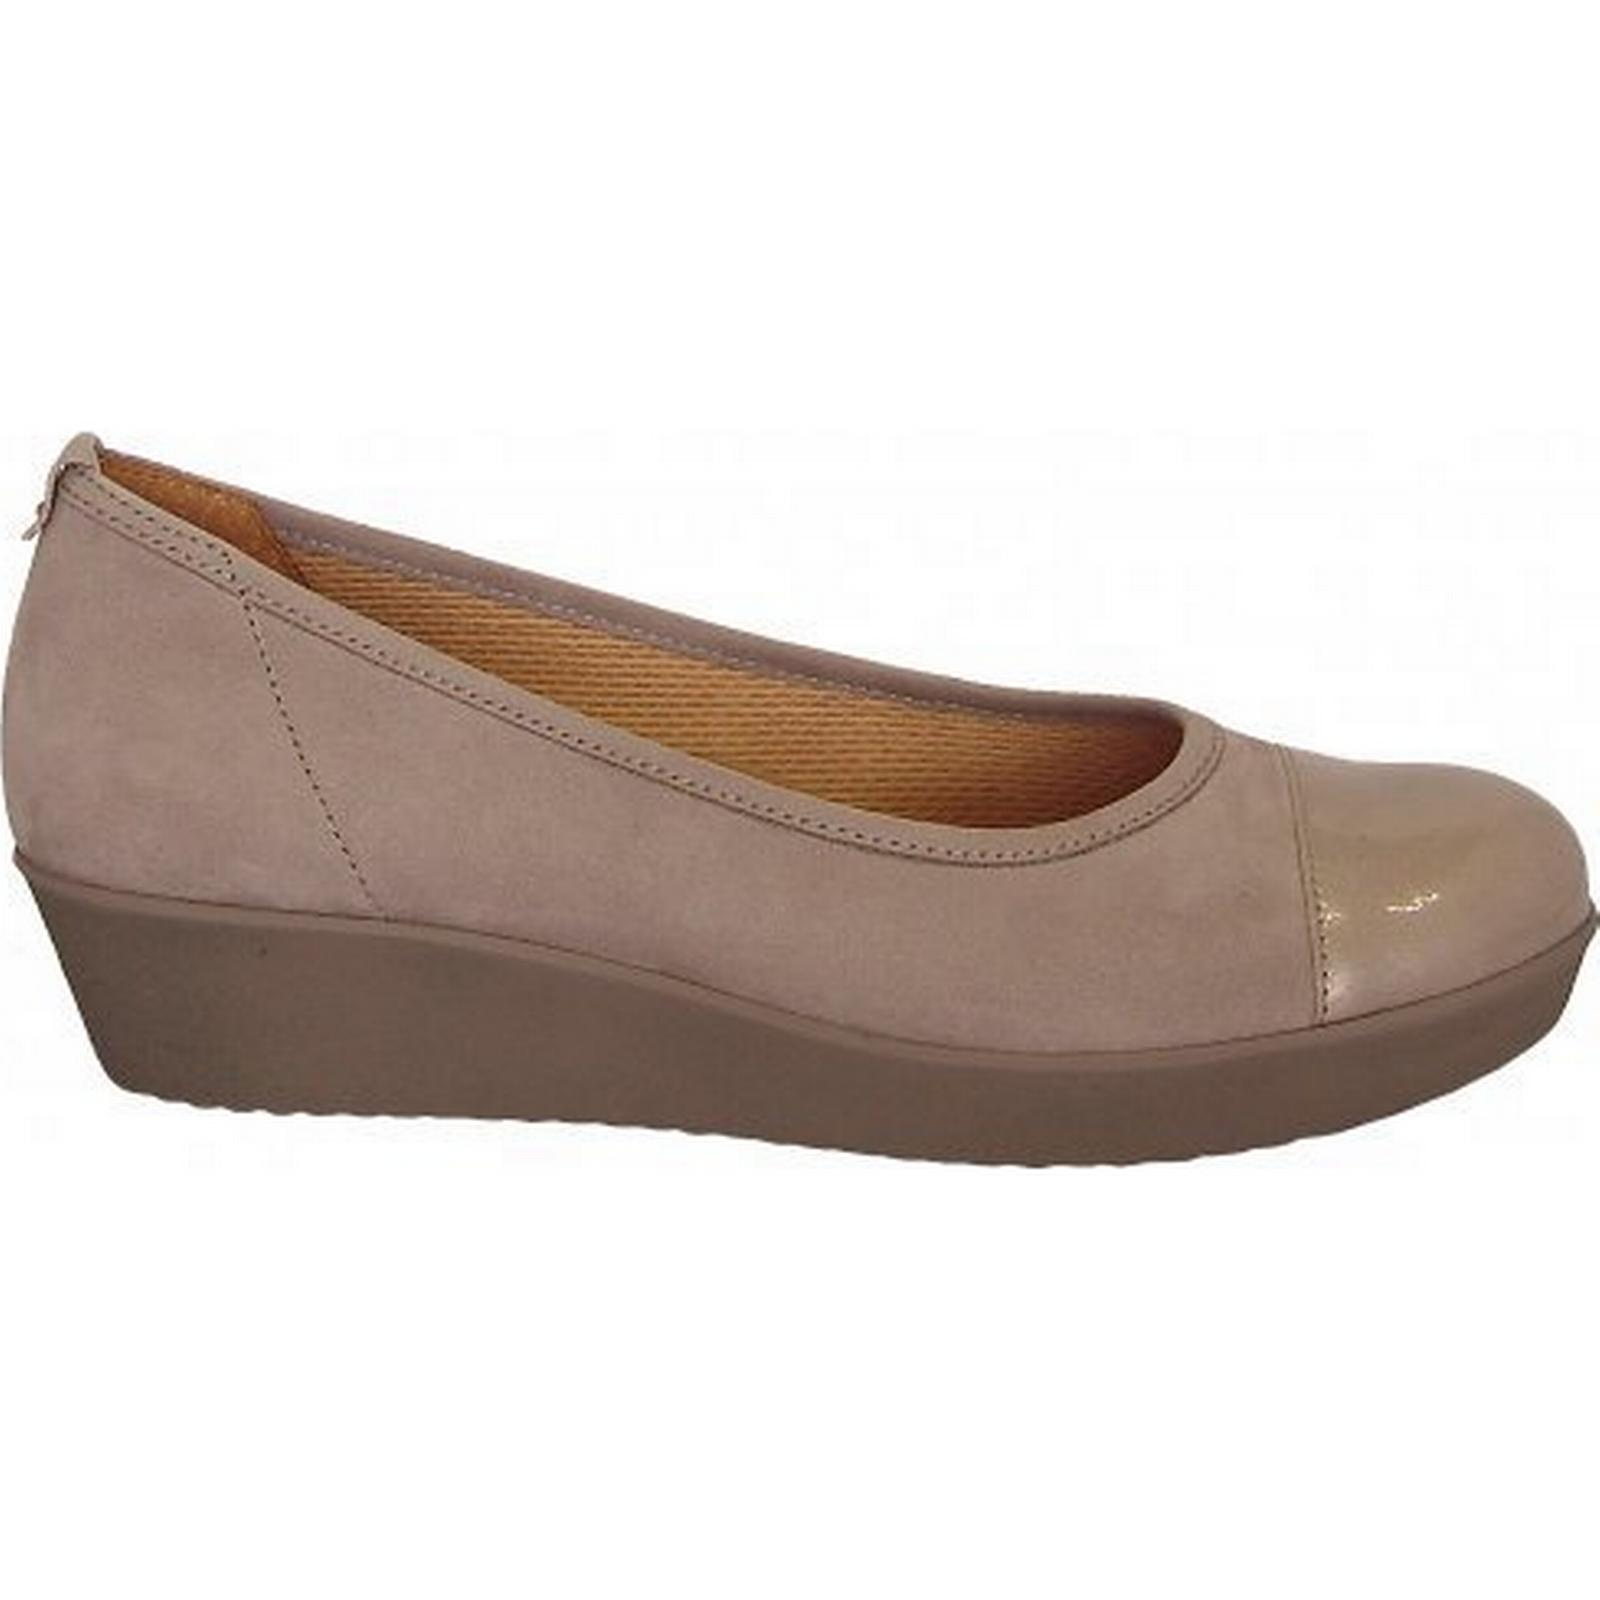 gabor orient gabor chaussures orient 66 471 471 471 33 taille: 4.5, couleur taupe f2f3a3